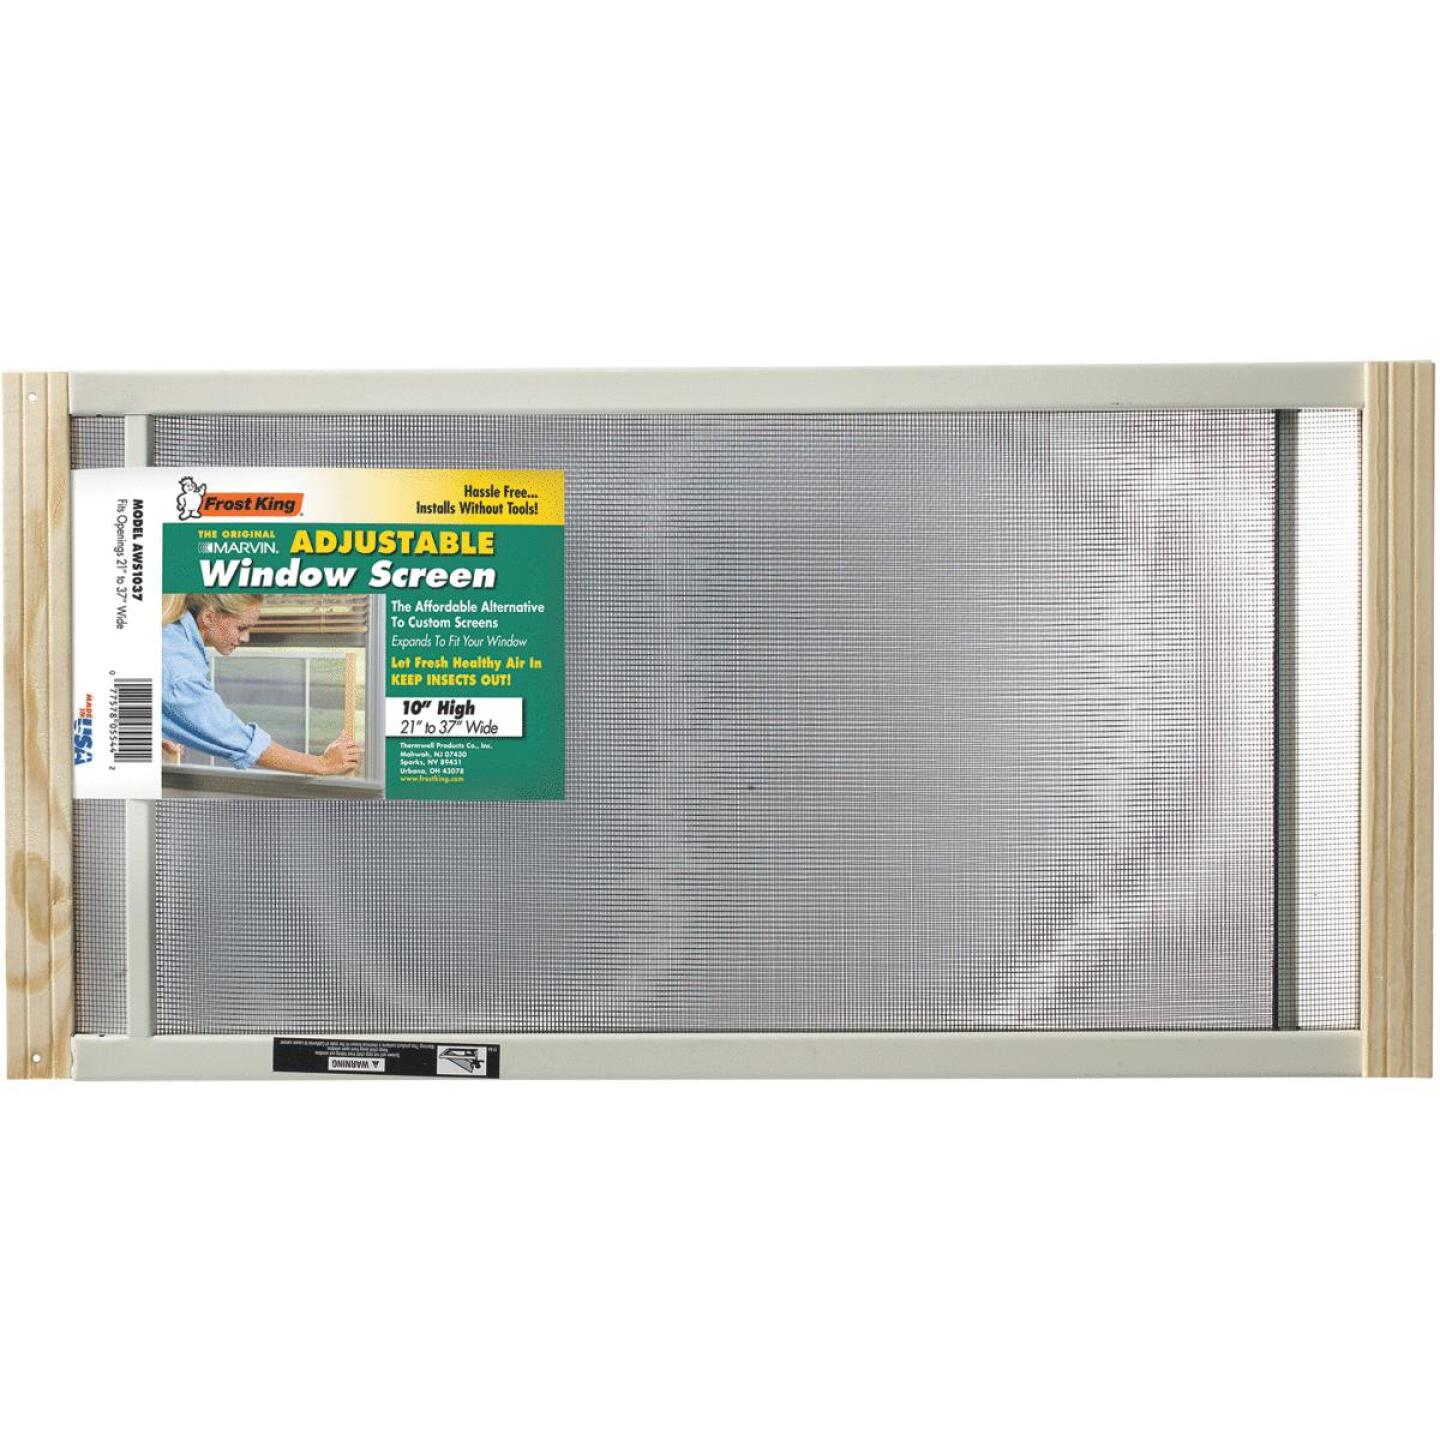 W.B. Marvin 10 In. x 21-37 in. Adjustable Window Screens by Frost King Image 1